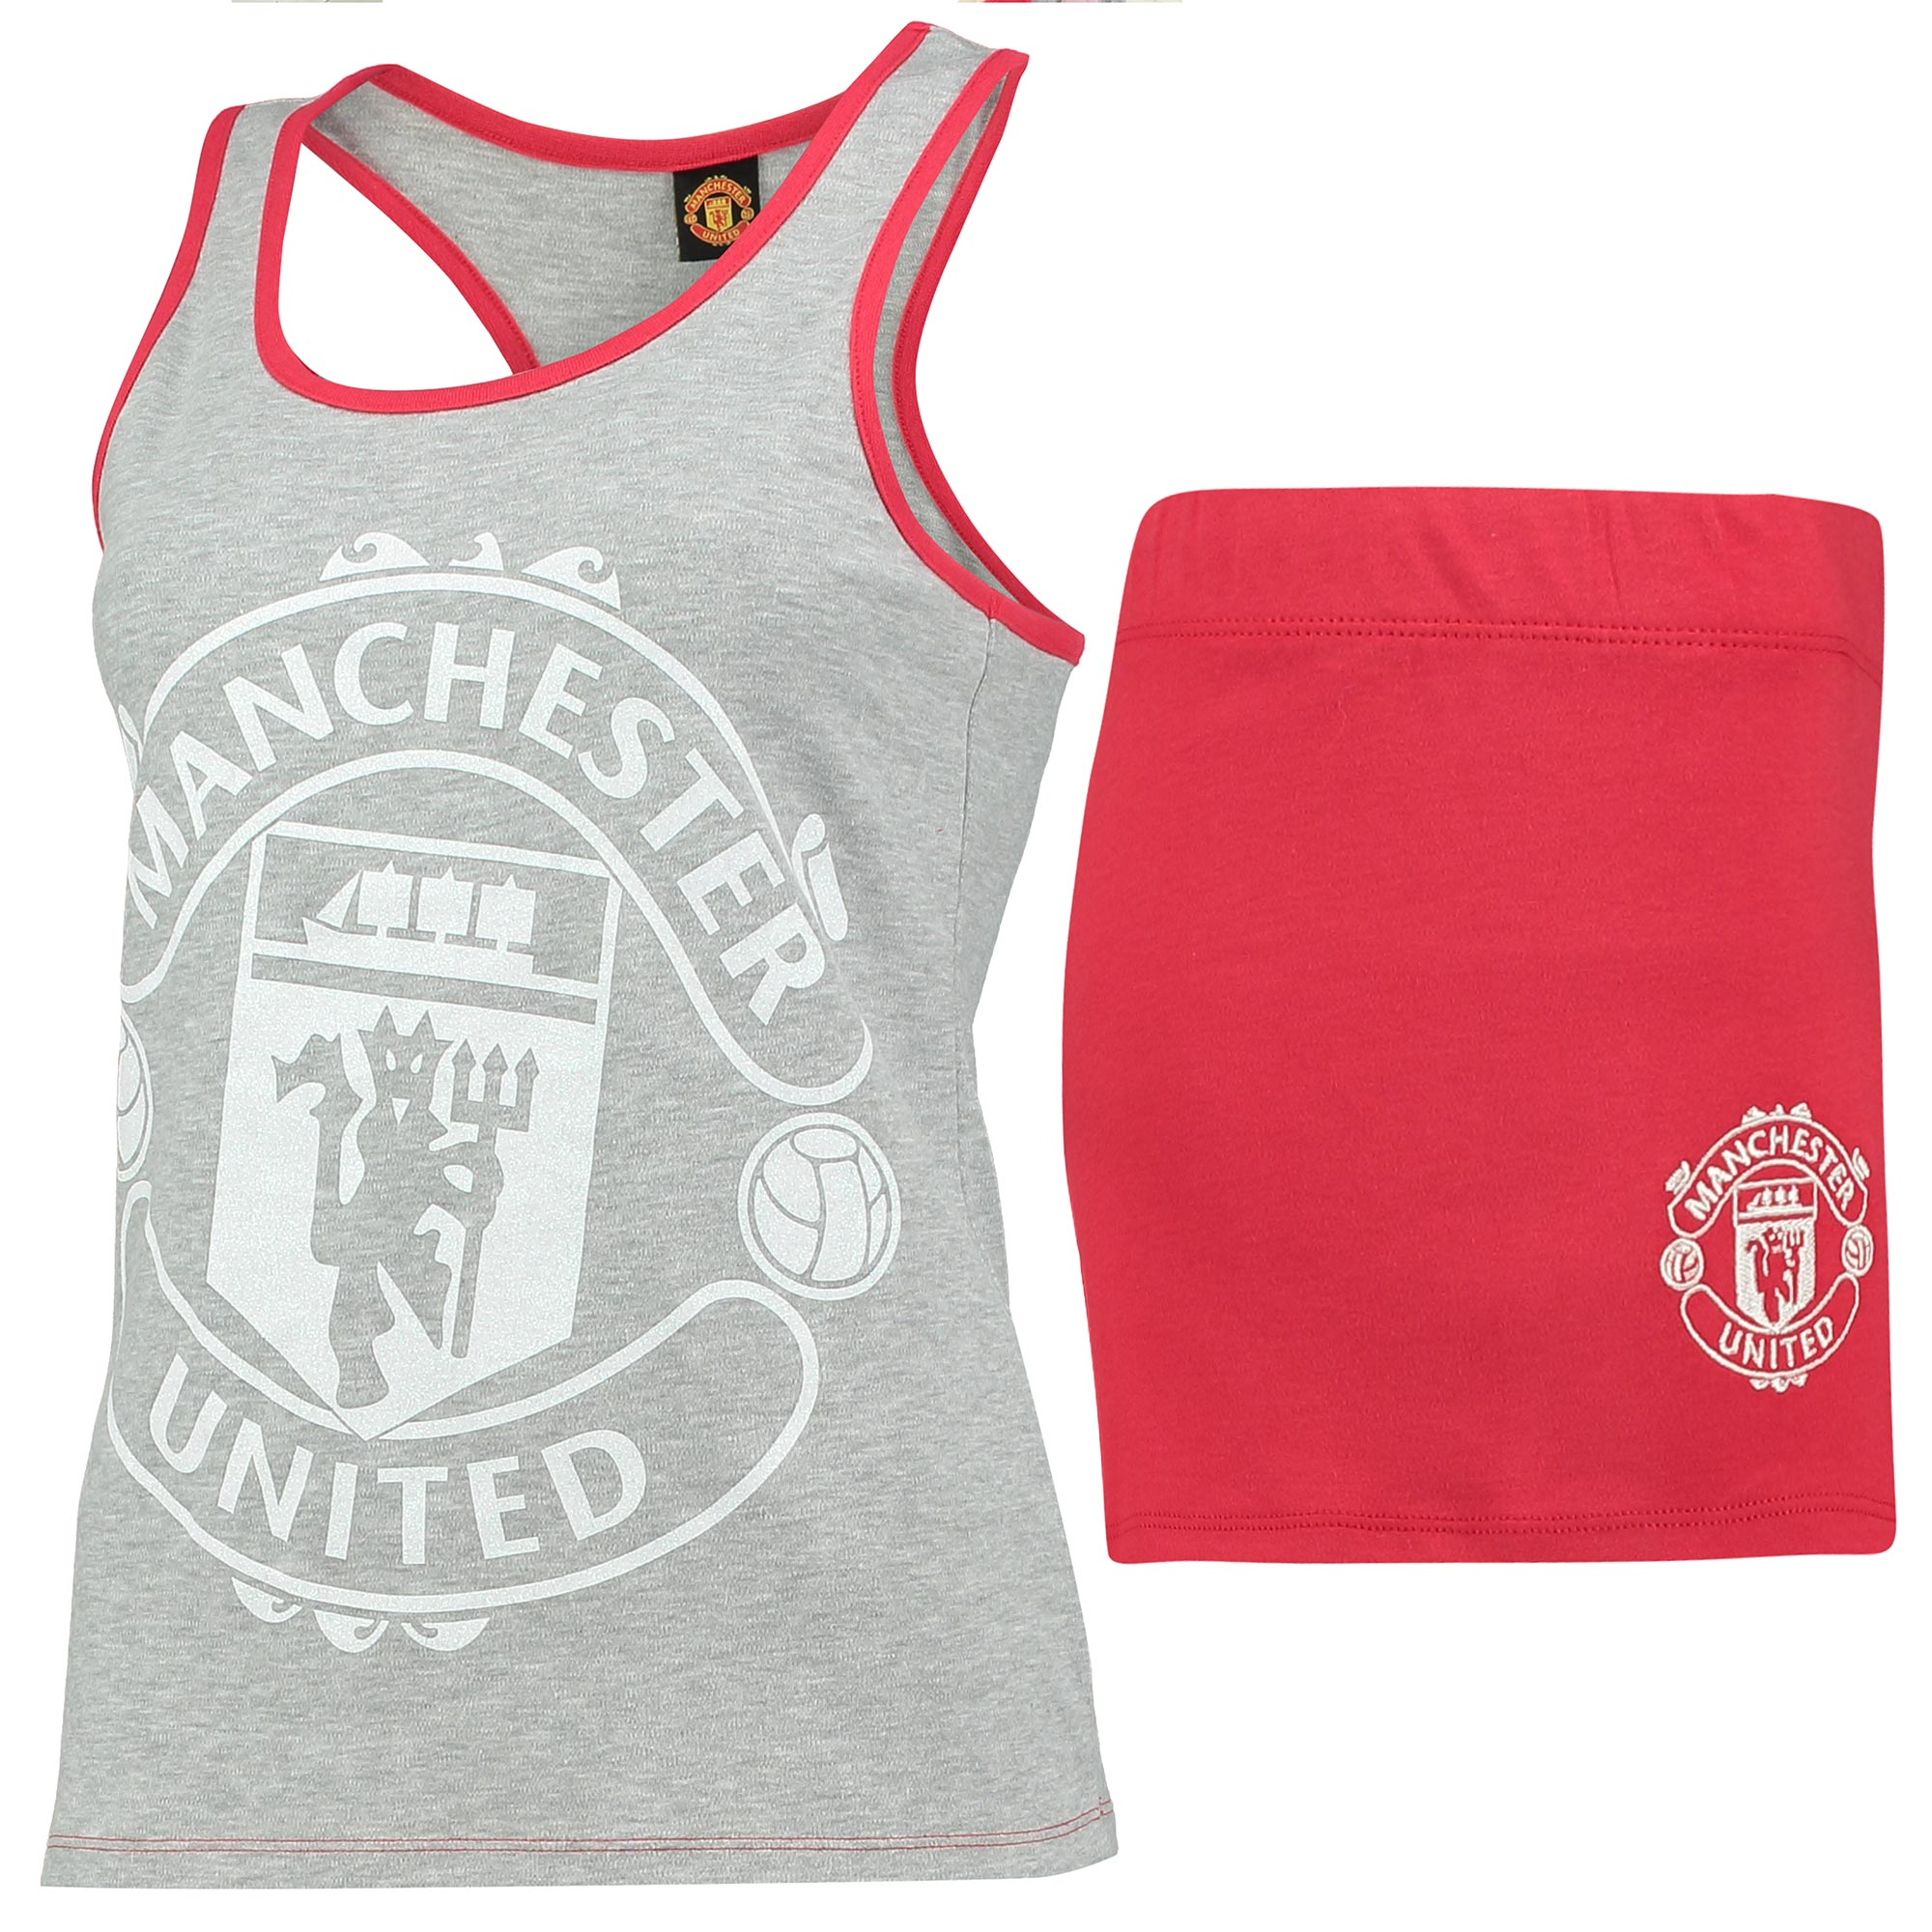 Manchester United Crest Shortie Pyjamas - Grey Marl/Red - Womens